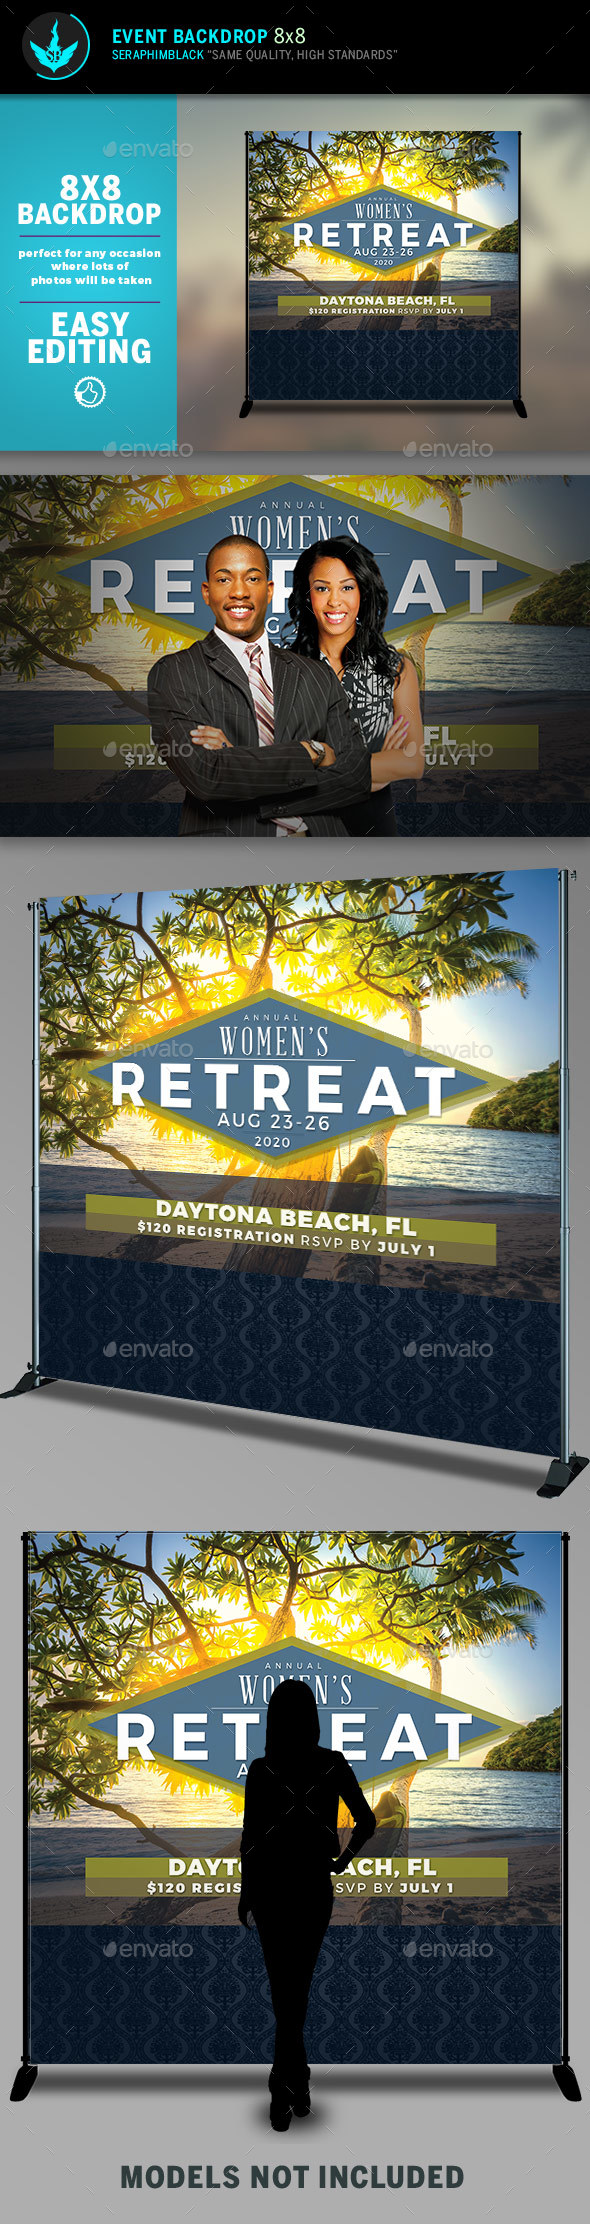 Women's Retreat 8x8 Event Backdrop Template - Signage Print Templates